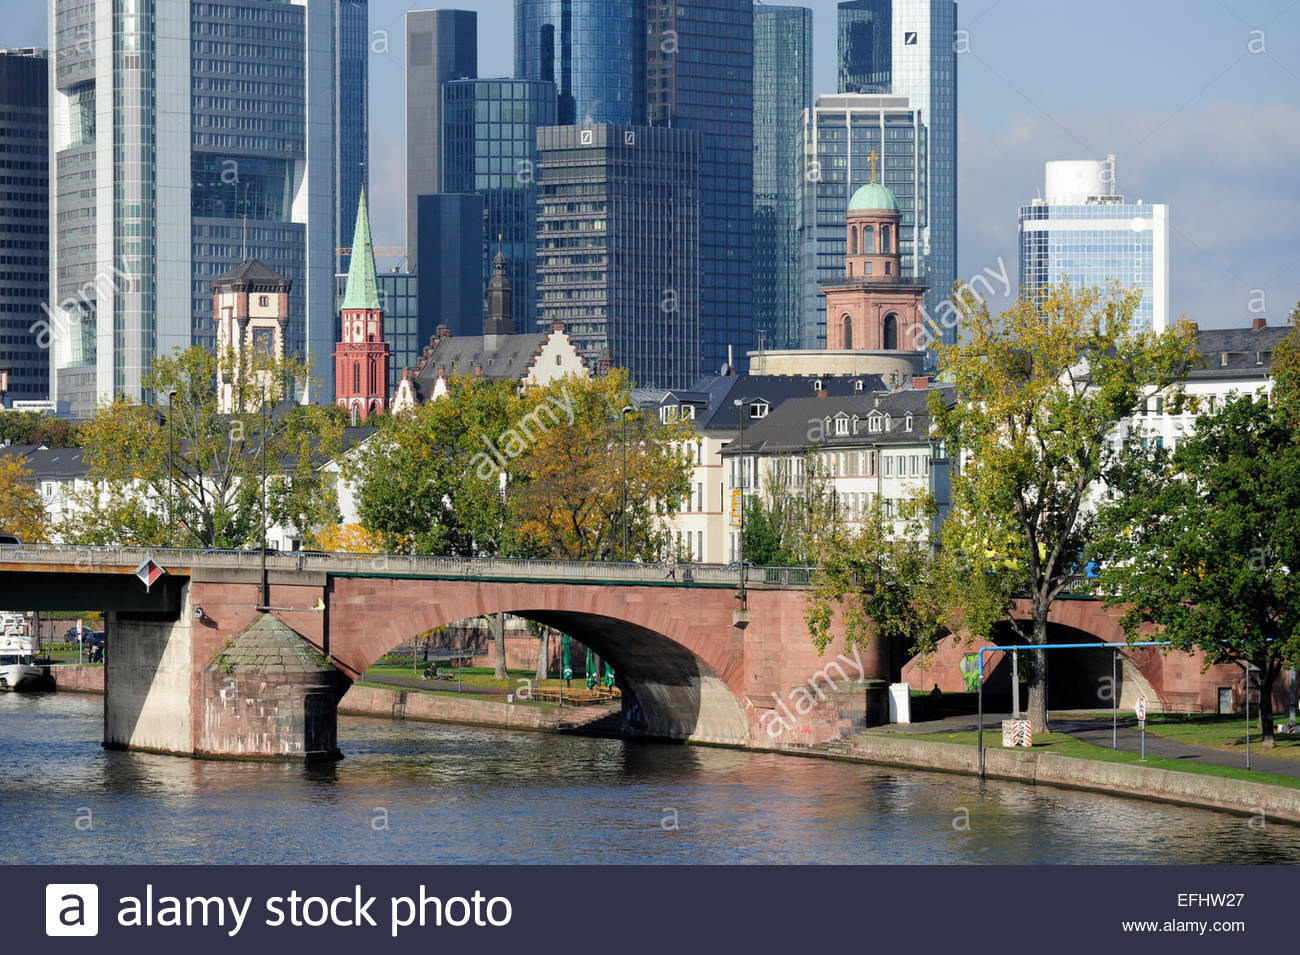 Old Town and banking district, Alte Bruecke bridge crossing the river, Frankfurt am Main, Hesse, Germany - Stock Image